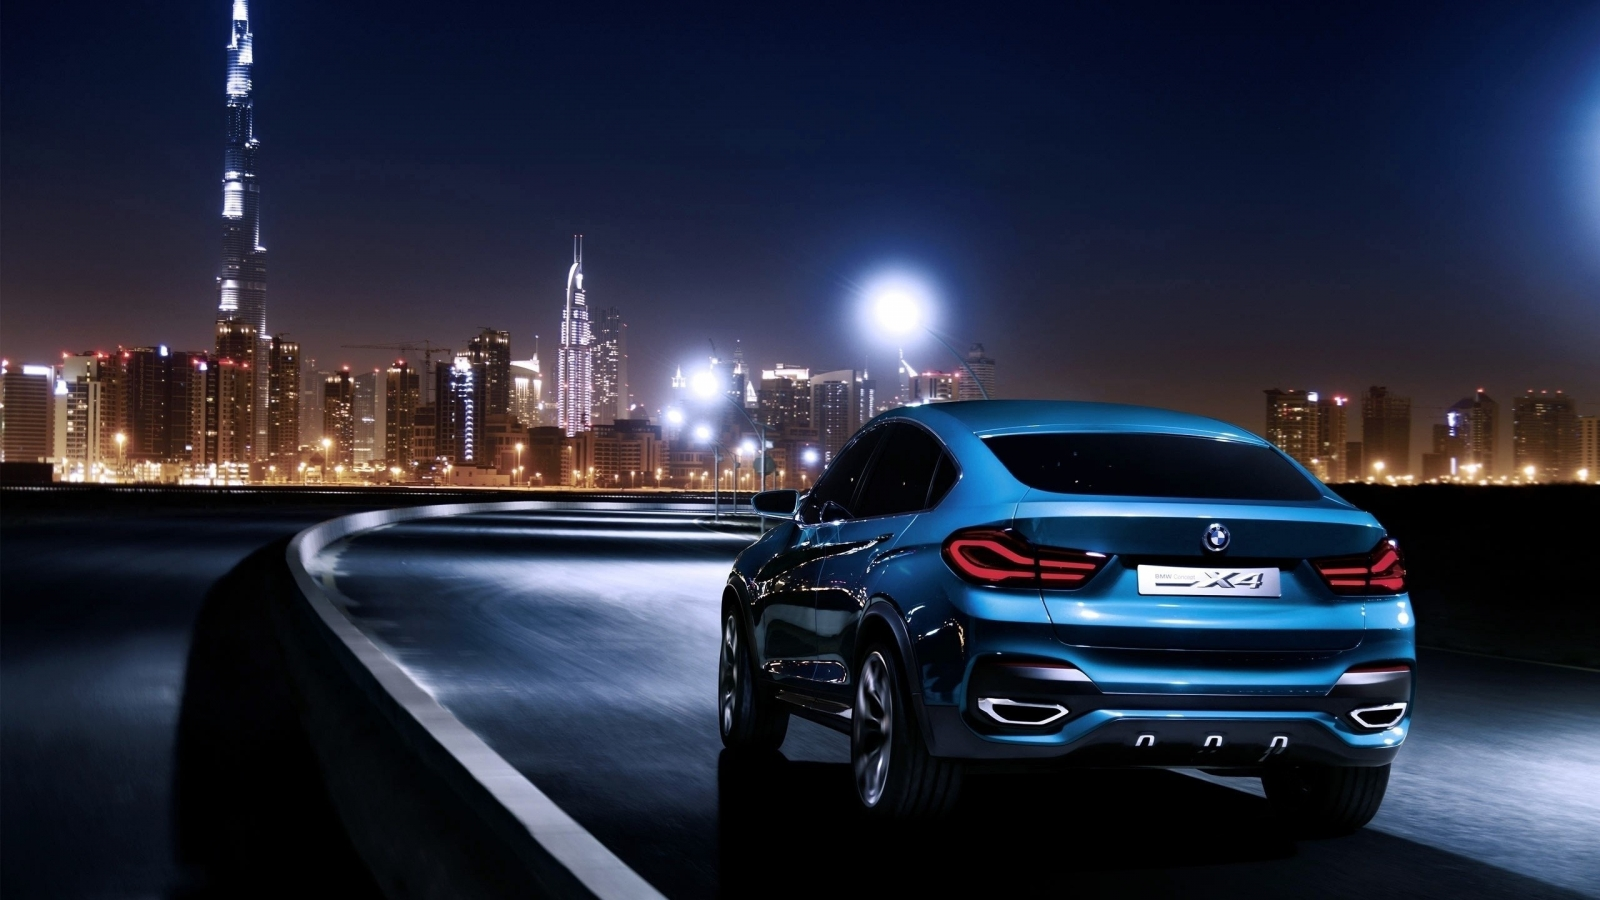 Blue BMW X4 Rear for 1600 x 900 HDTV resolution